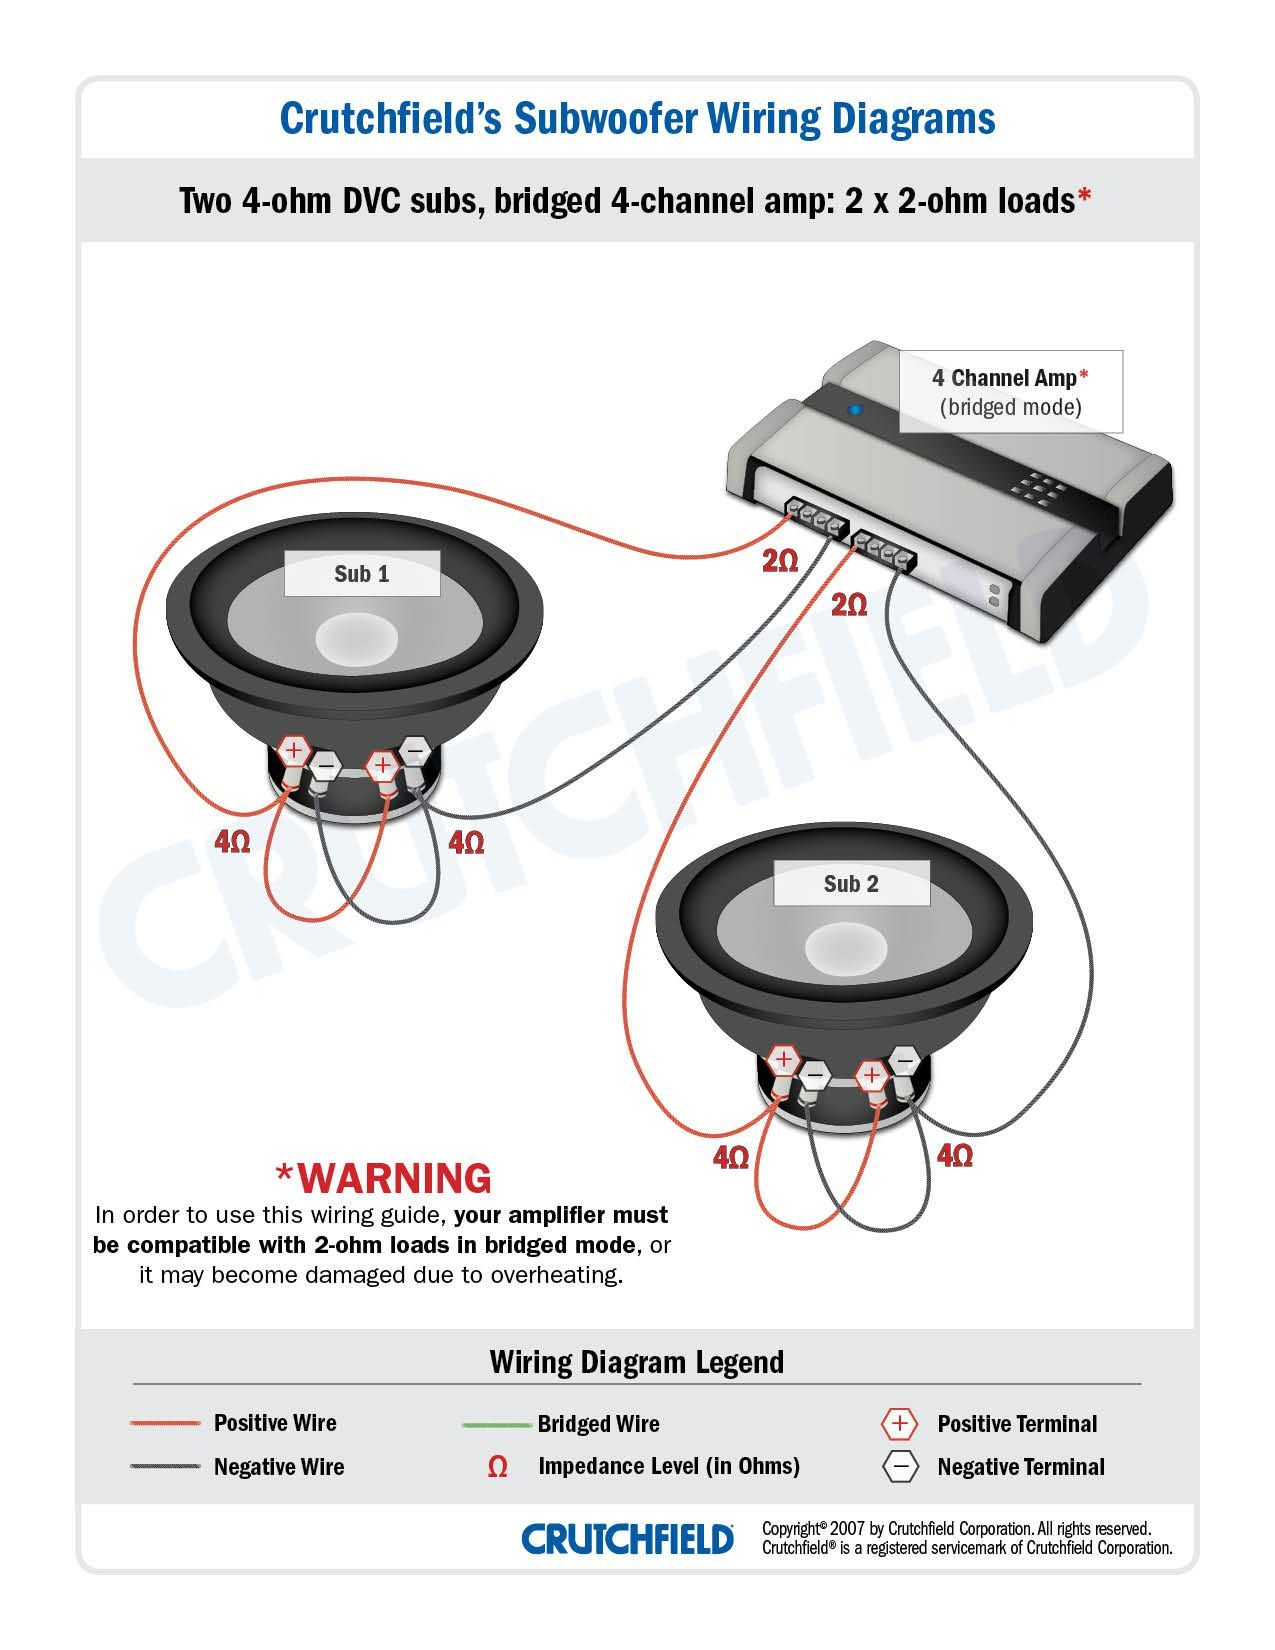 Subwoofer Wiring Diagram 8 Ohm Schematic And Wiring Diagram In 2020 Subwoofer Wiring Car Audio Audio Design